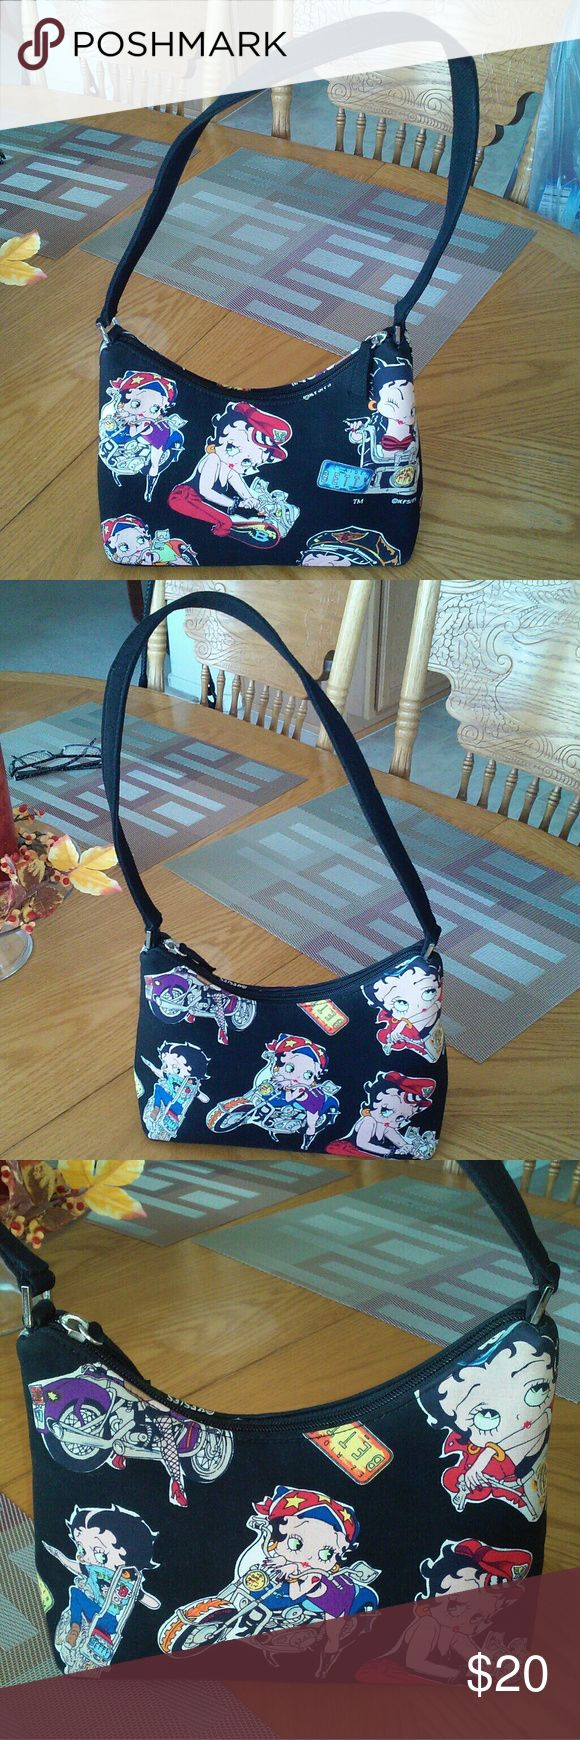 Betty Boop purse EZ Rider motorcycle VG used cond Really cute Betty Boop purse in very good condition. Measures 9 inches by 7 inches and strap is 22 inches long. This is EZ Rider Betty with her motorcycle. Bag has 2 small pockets inside. Bags